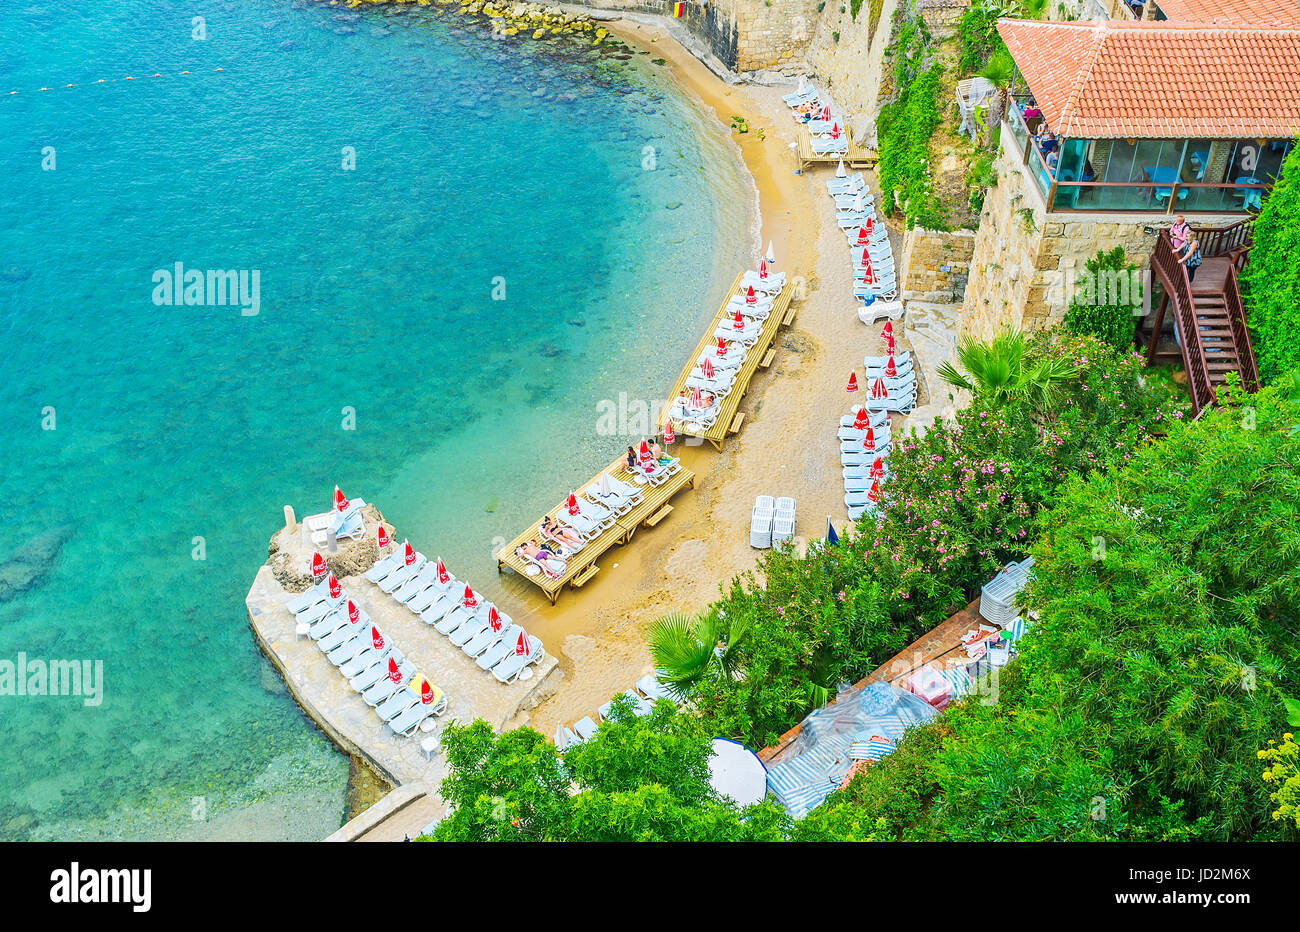 ANTALYA, TURKEY - MAY 6, 2017: Aerial view of Mermerli beach with ...